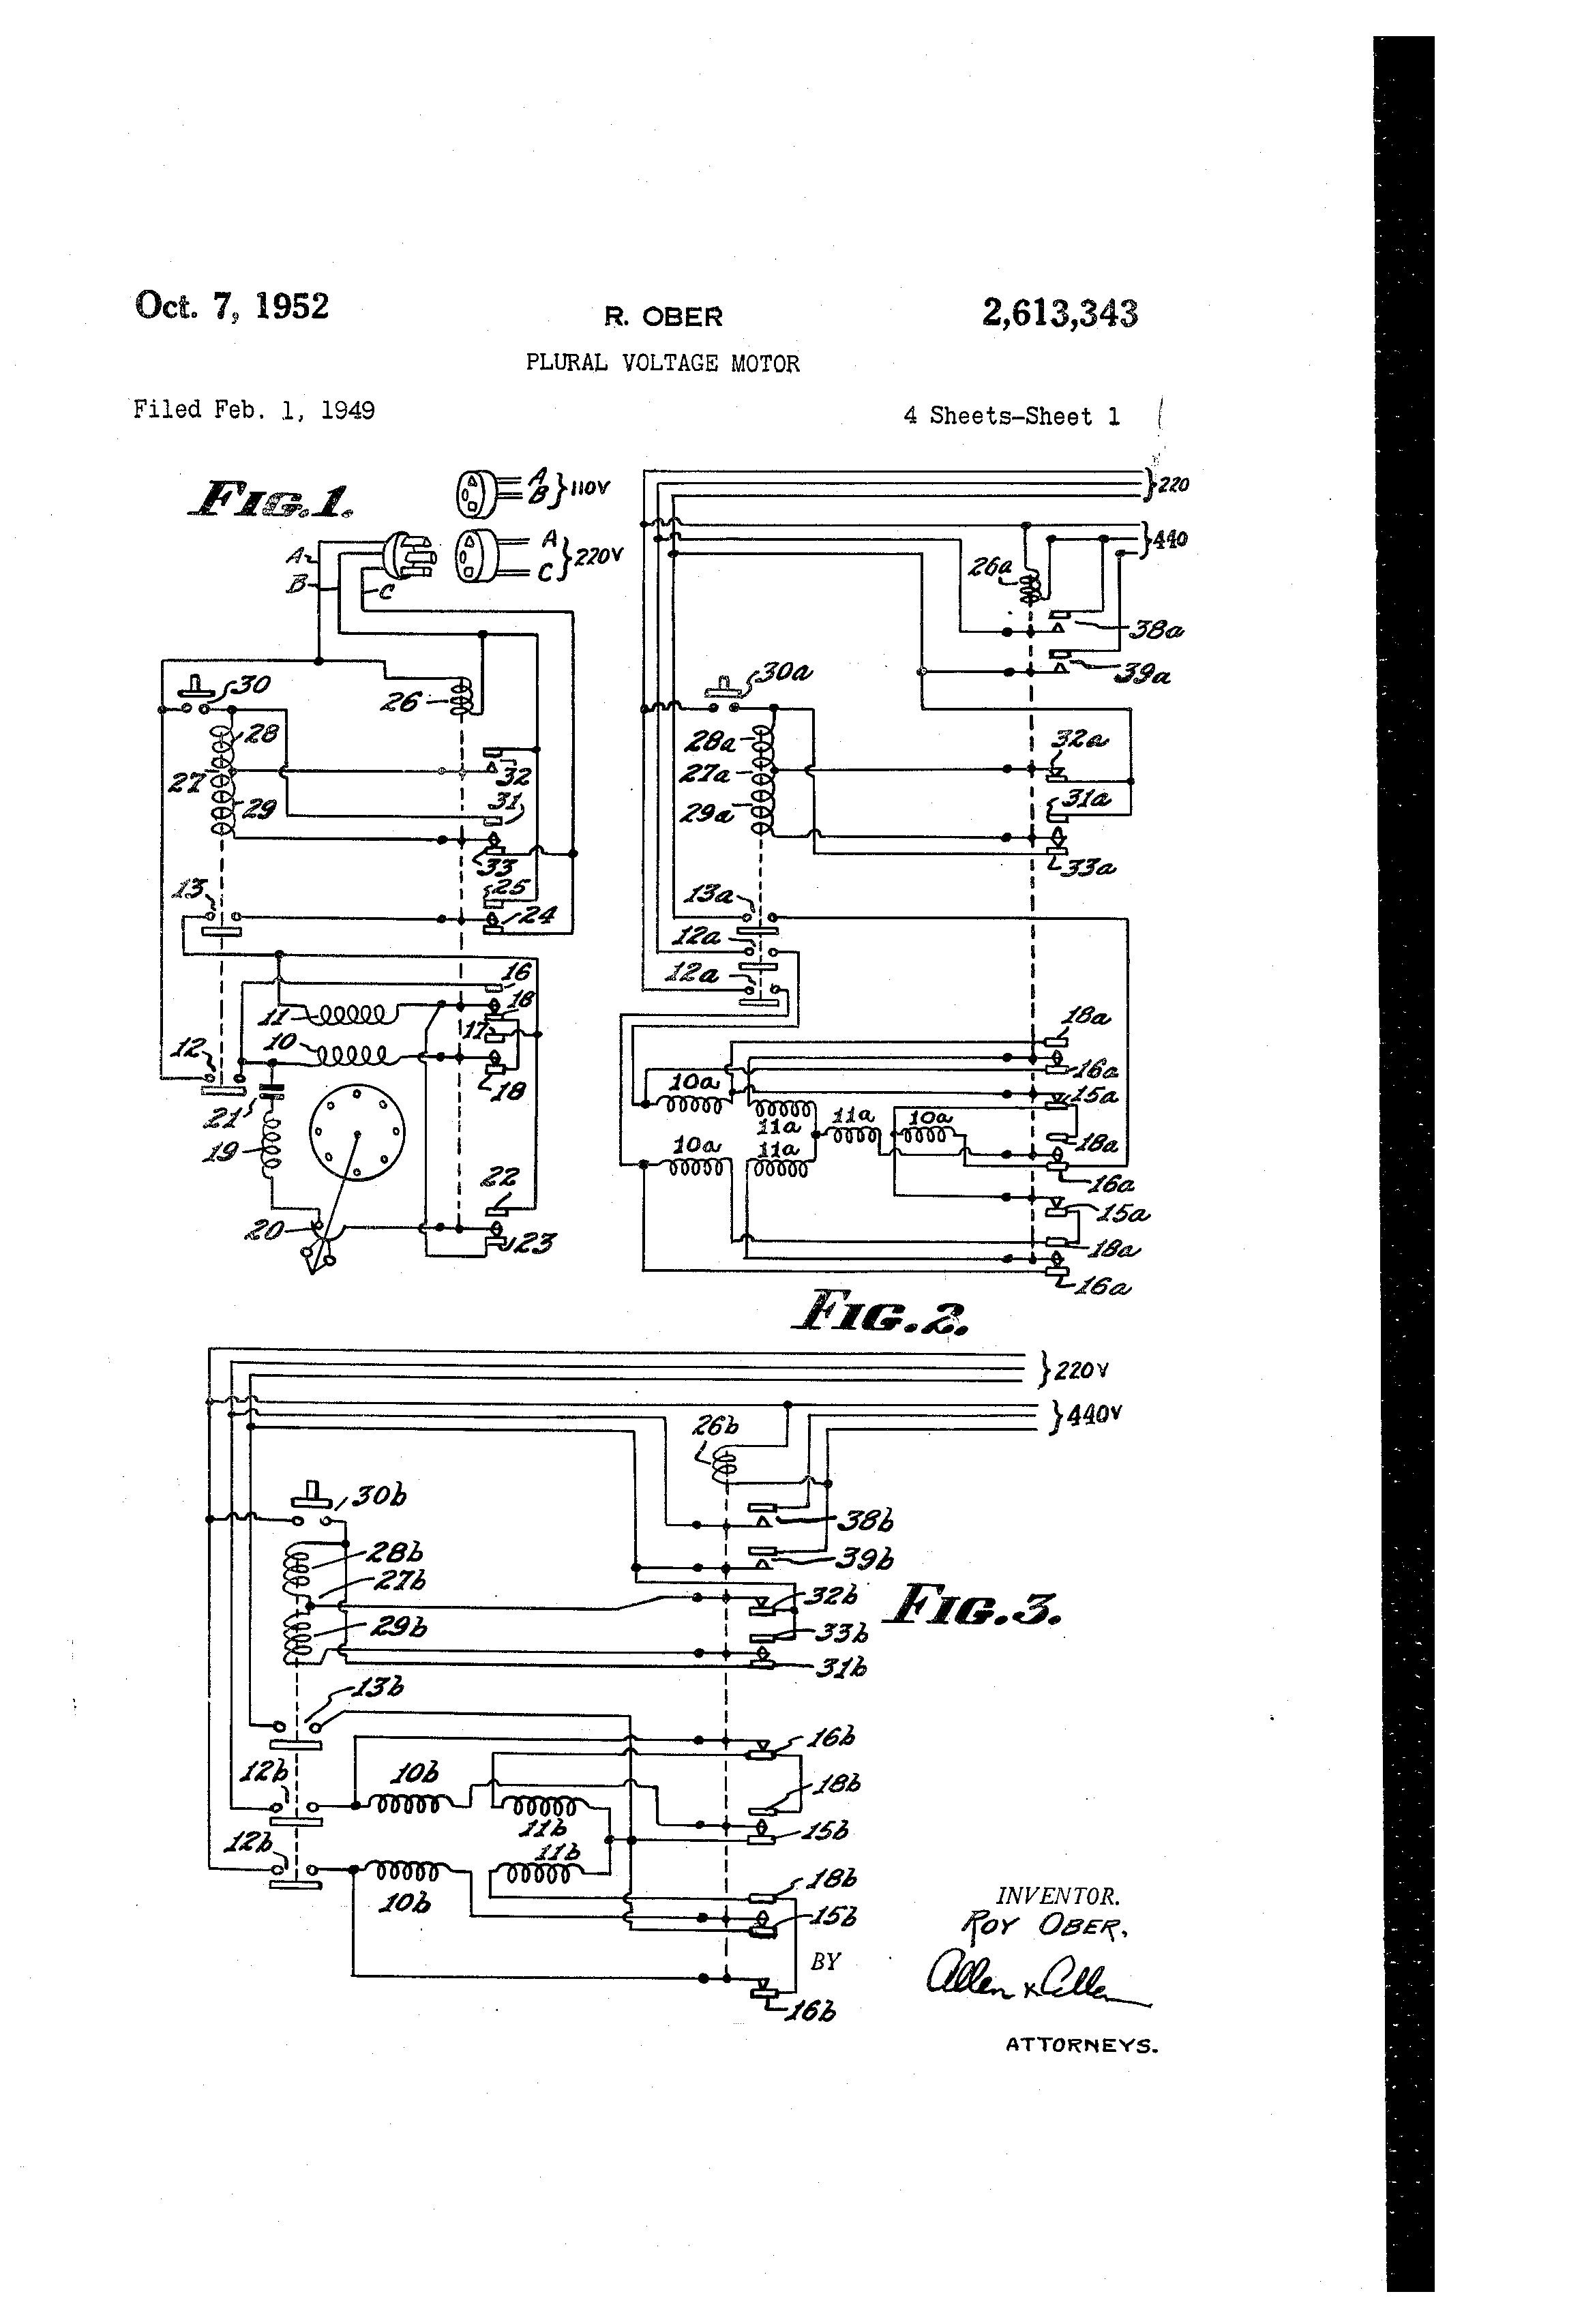 US2613343 0 patent us2613343 plural voltage motor google patents robbins and myers fan motor wiring diagram at mifinder.co